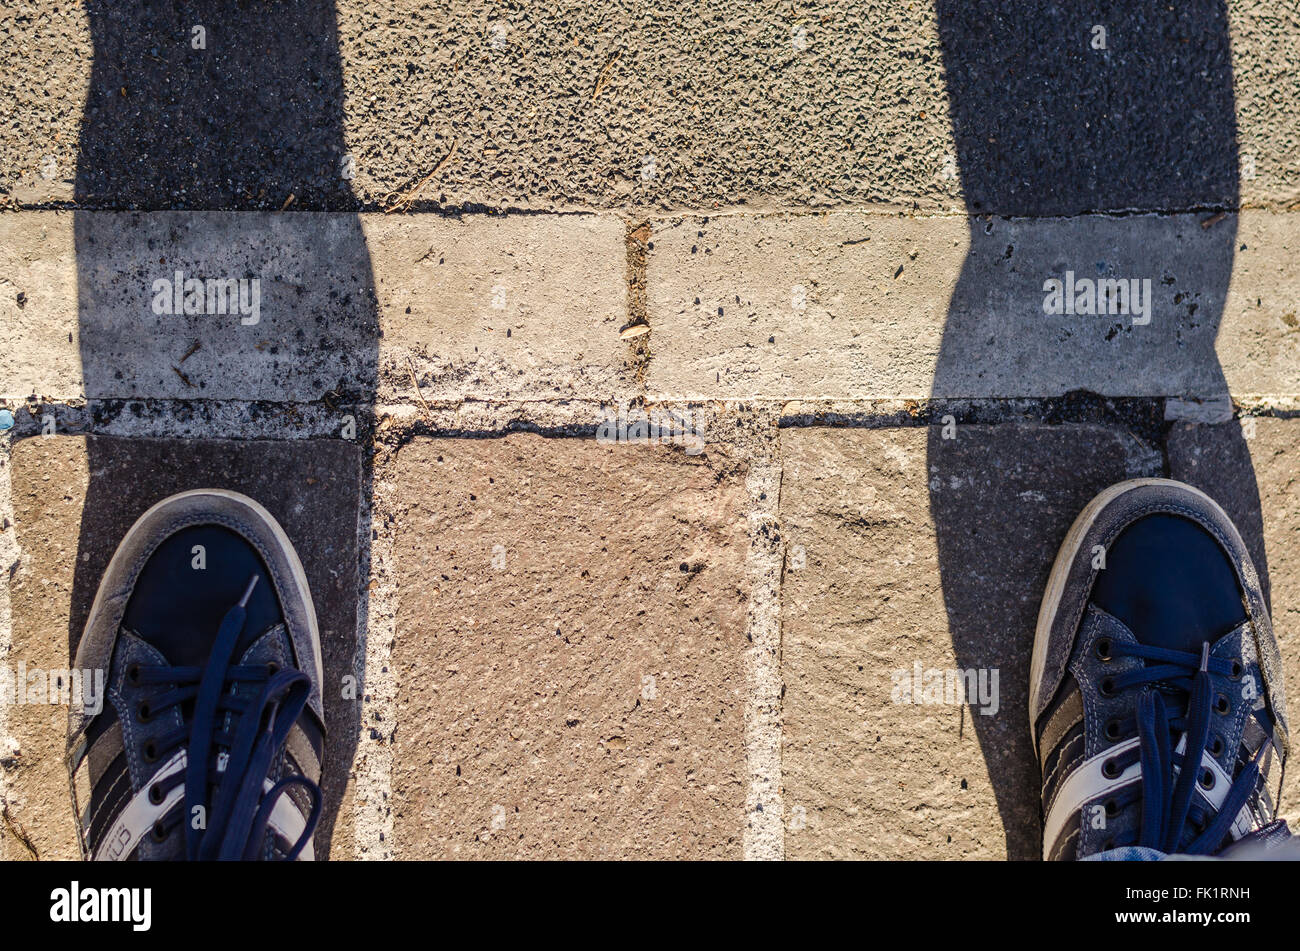 I am blocked, two feet blocked before cross the line.  symbol of the fear of change and to pass forward an other - Stock Image